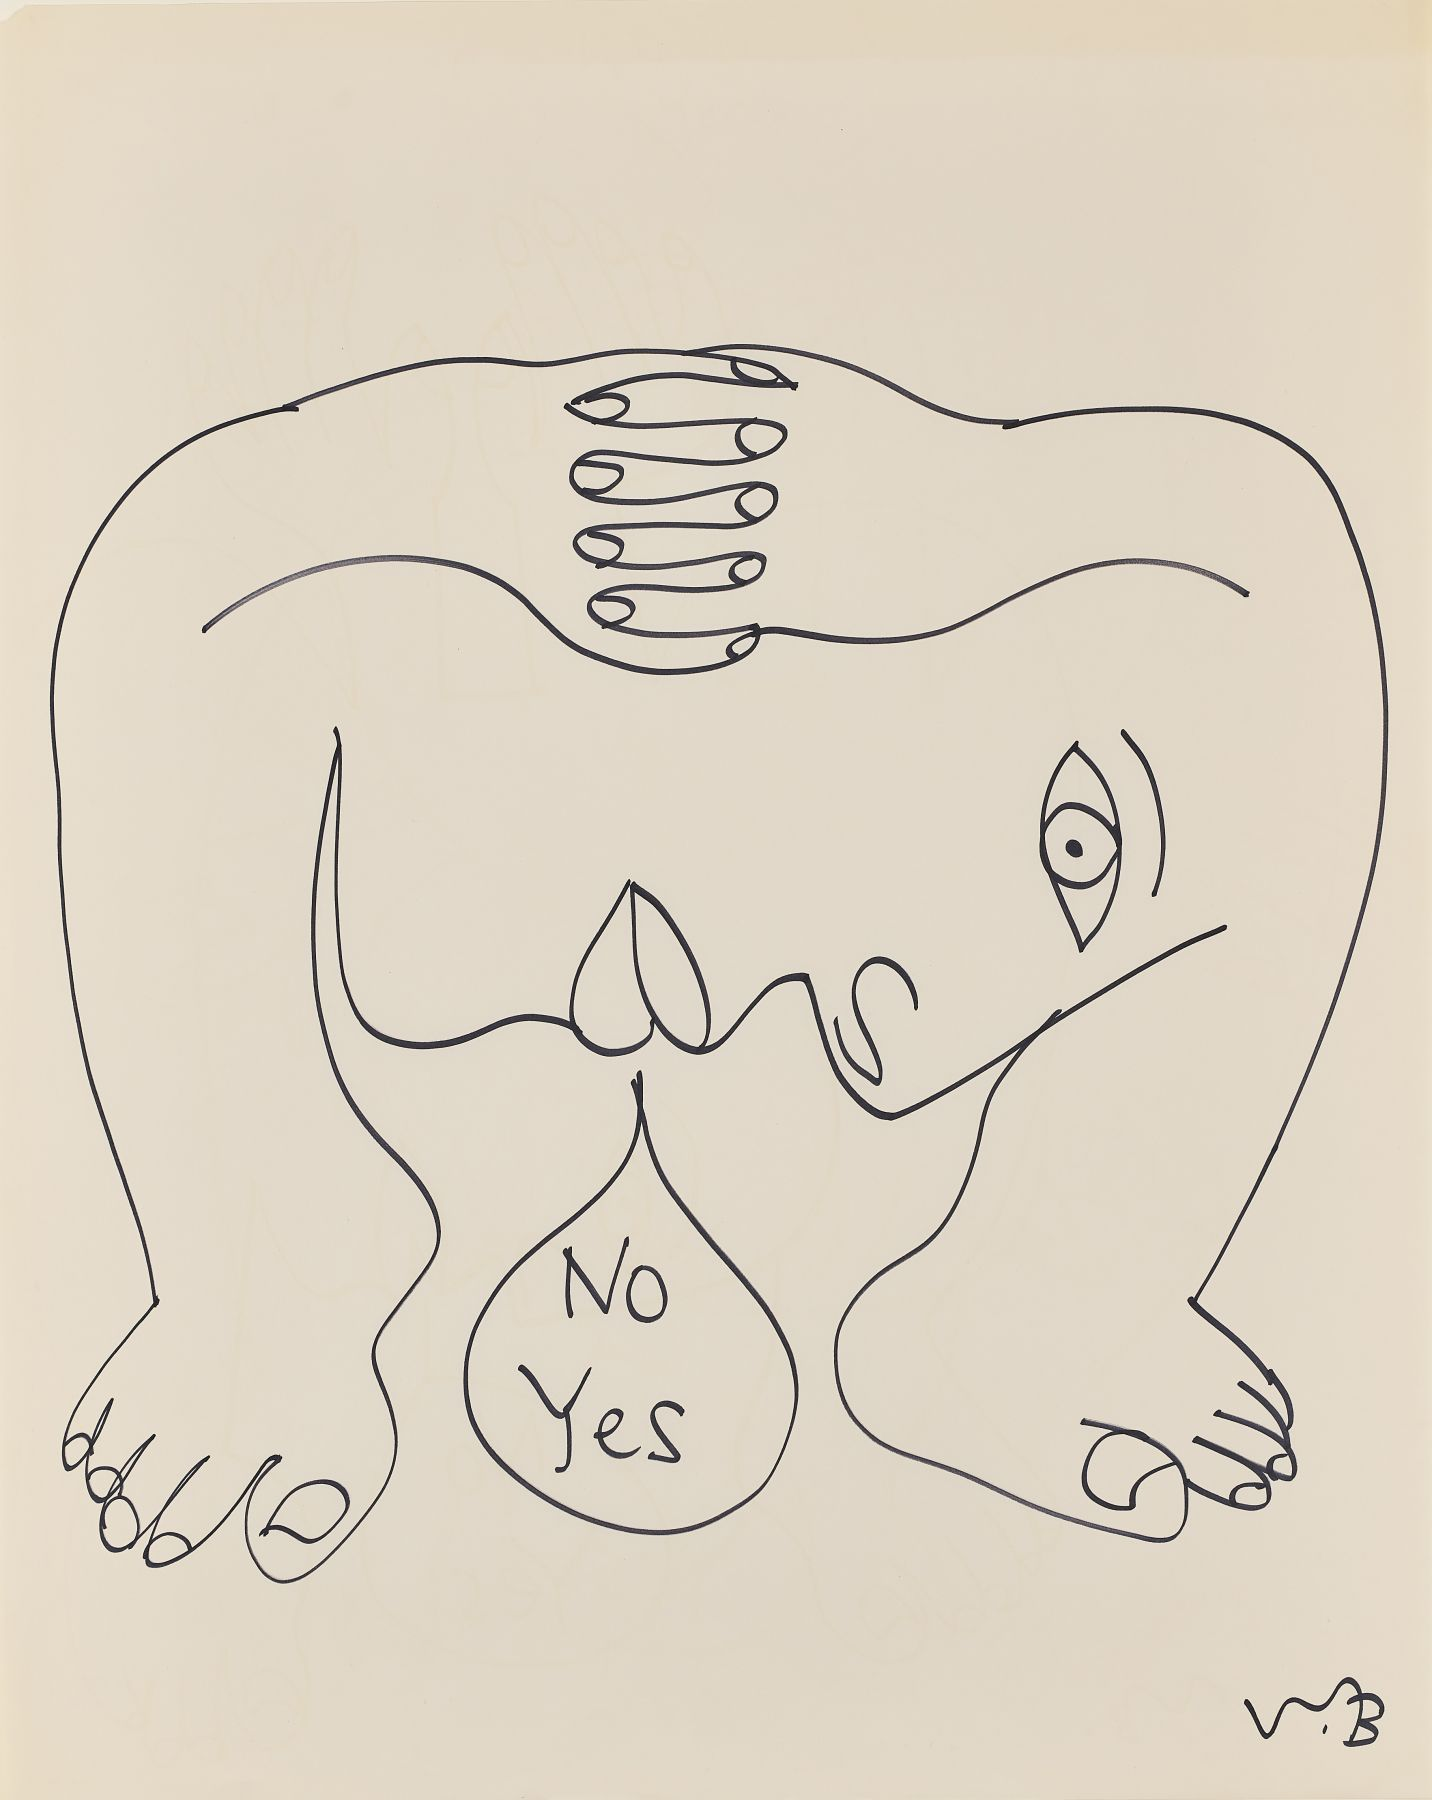 Walter Battiss - Untitled (No Yes, large profile under clasped hands)